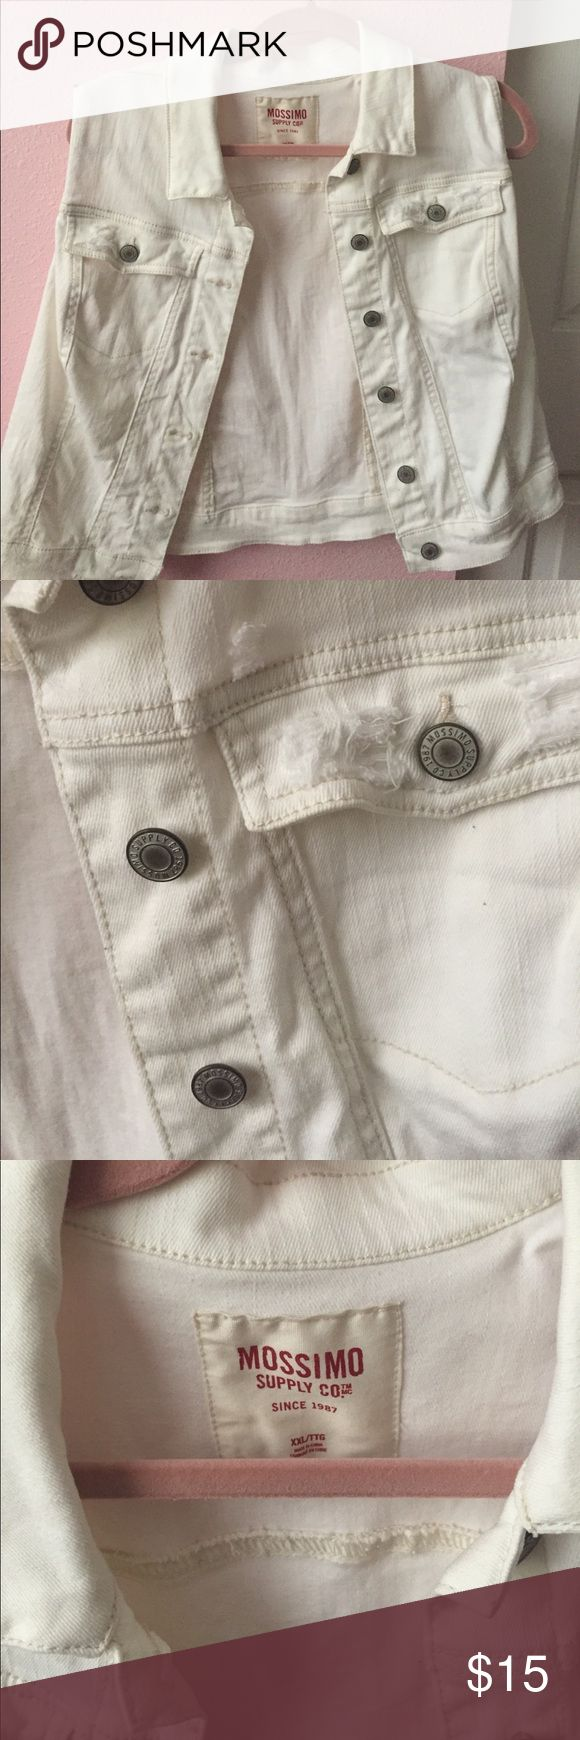 White Jean Vest This is a staple piece in any wardrobe! Goes with any outfit! Great quality material! Worn only a few times! Mossimo Supply Co. Jackets & Coats Vests